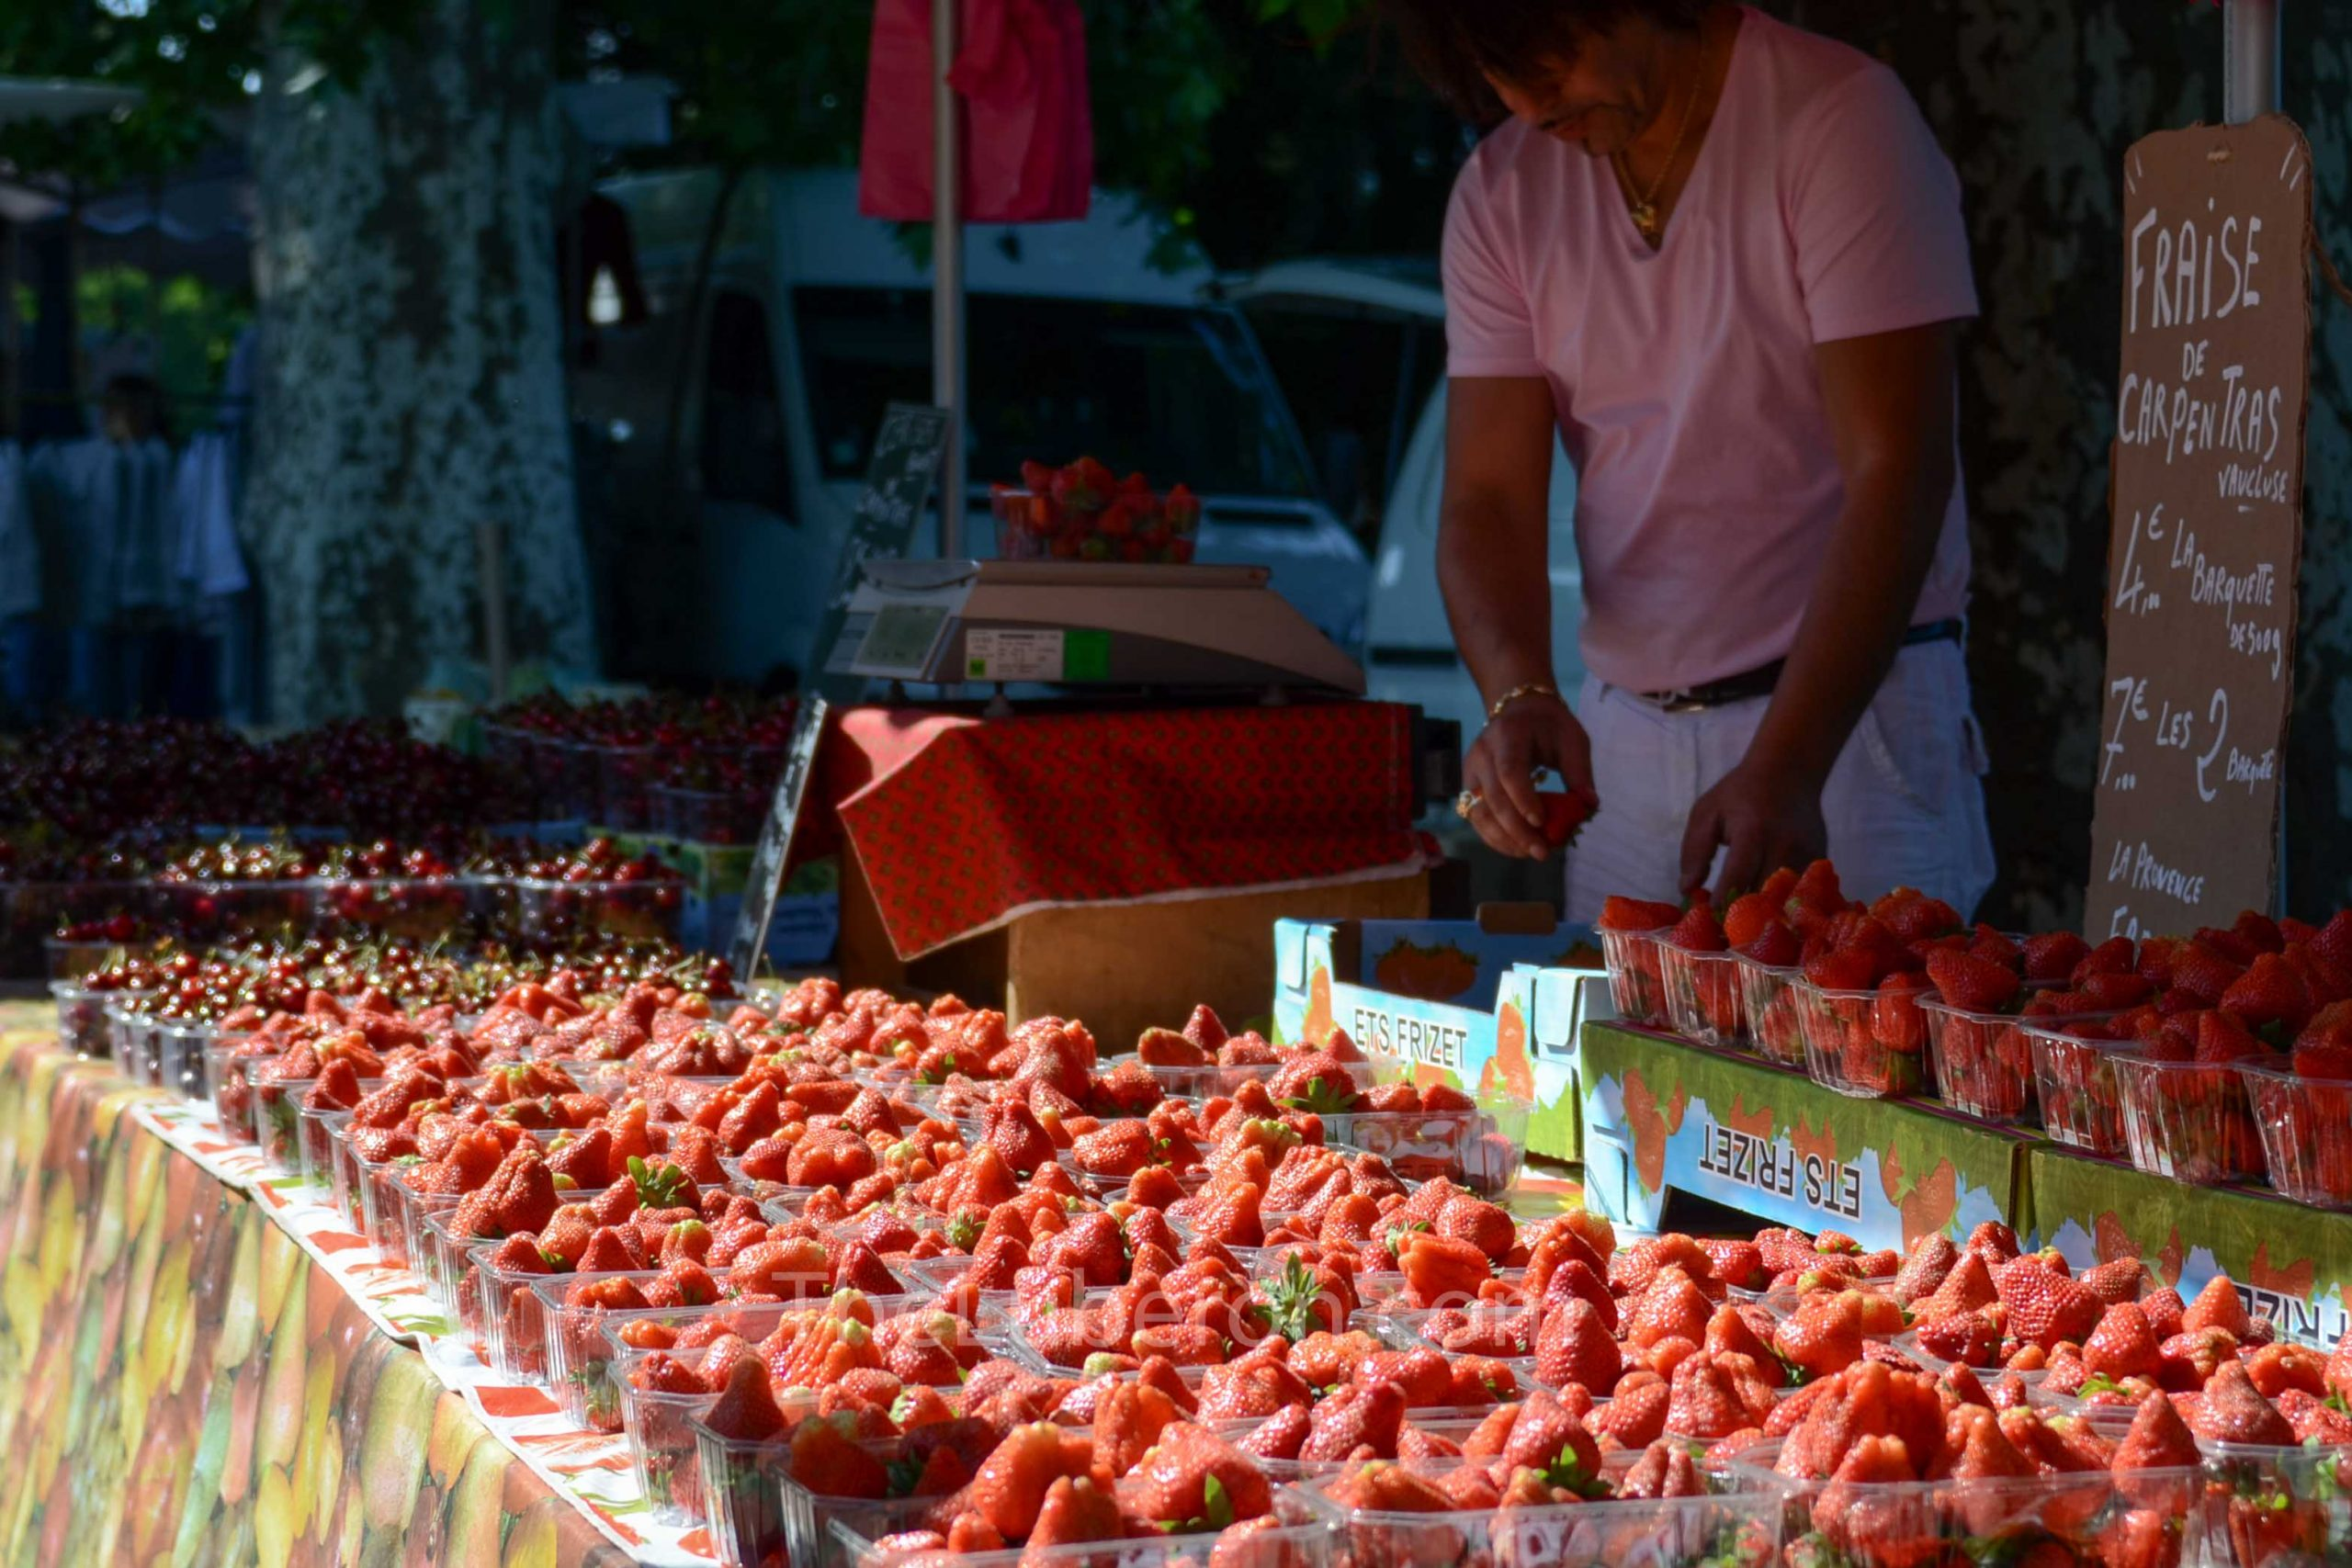 Strawberries for sale at Lourmarin market